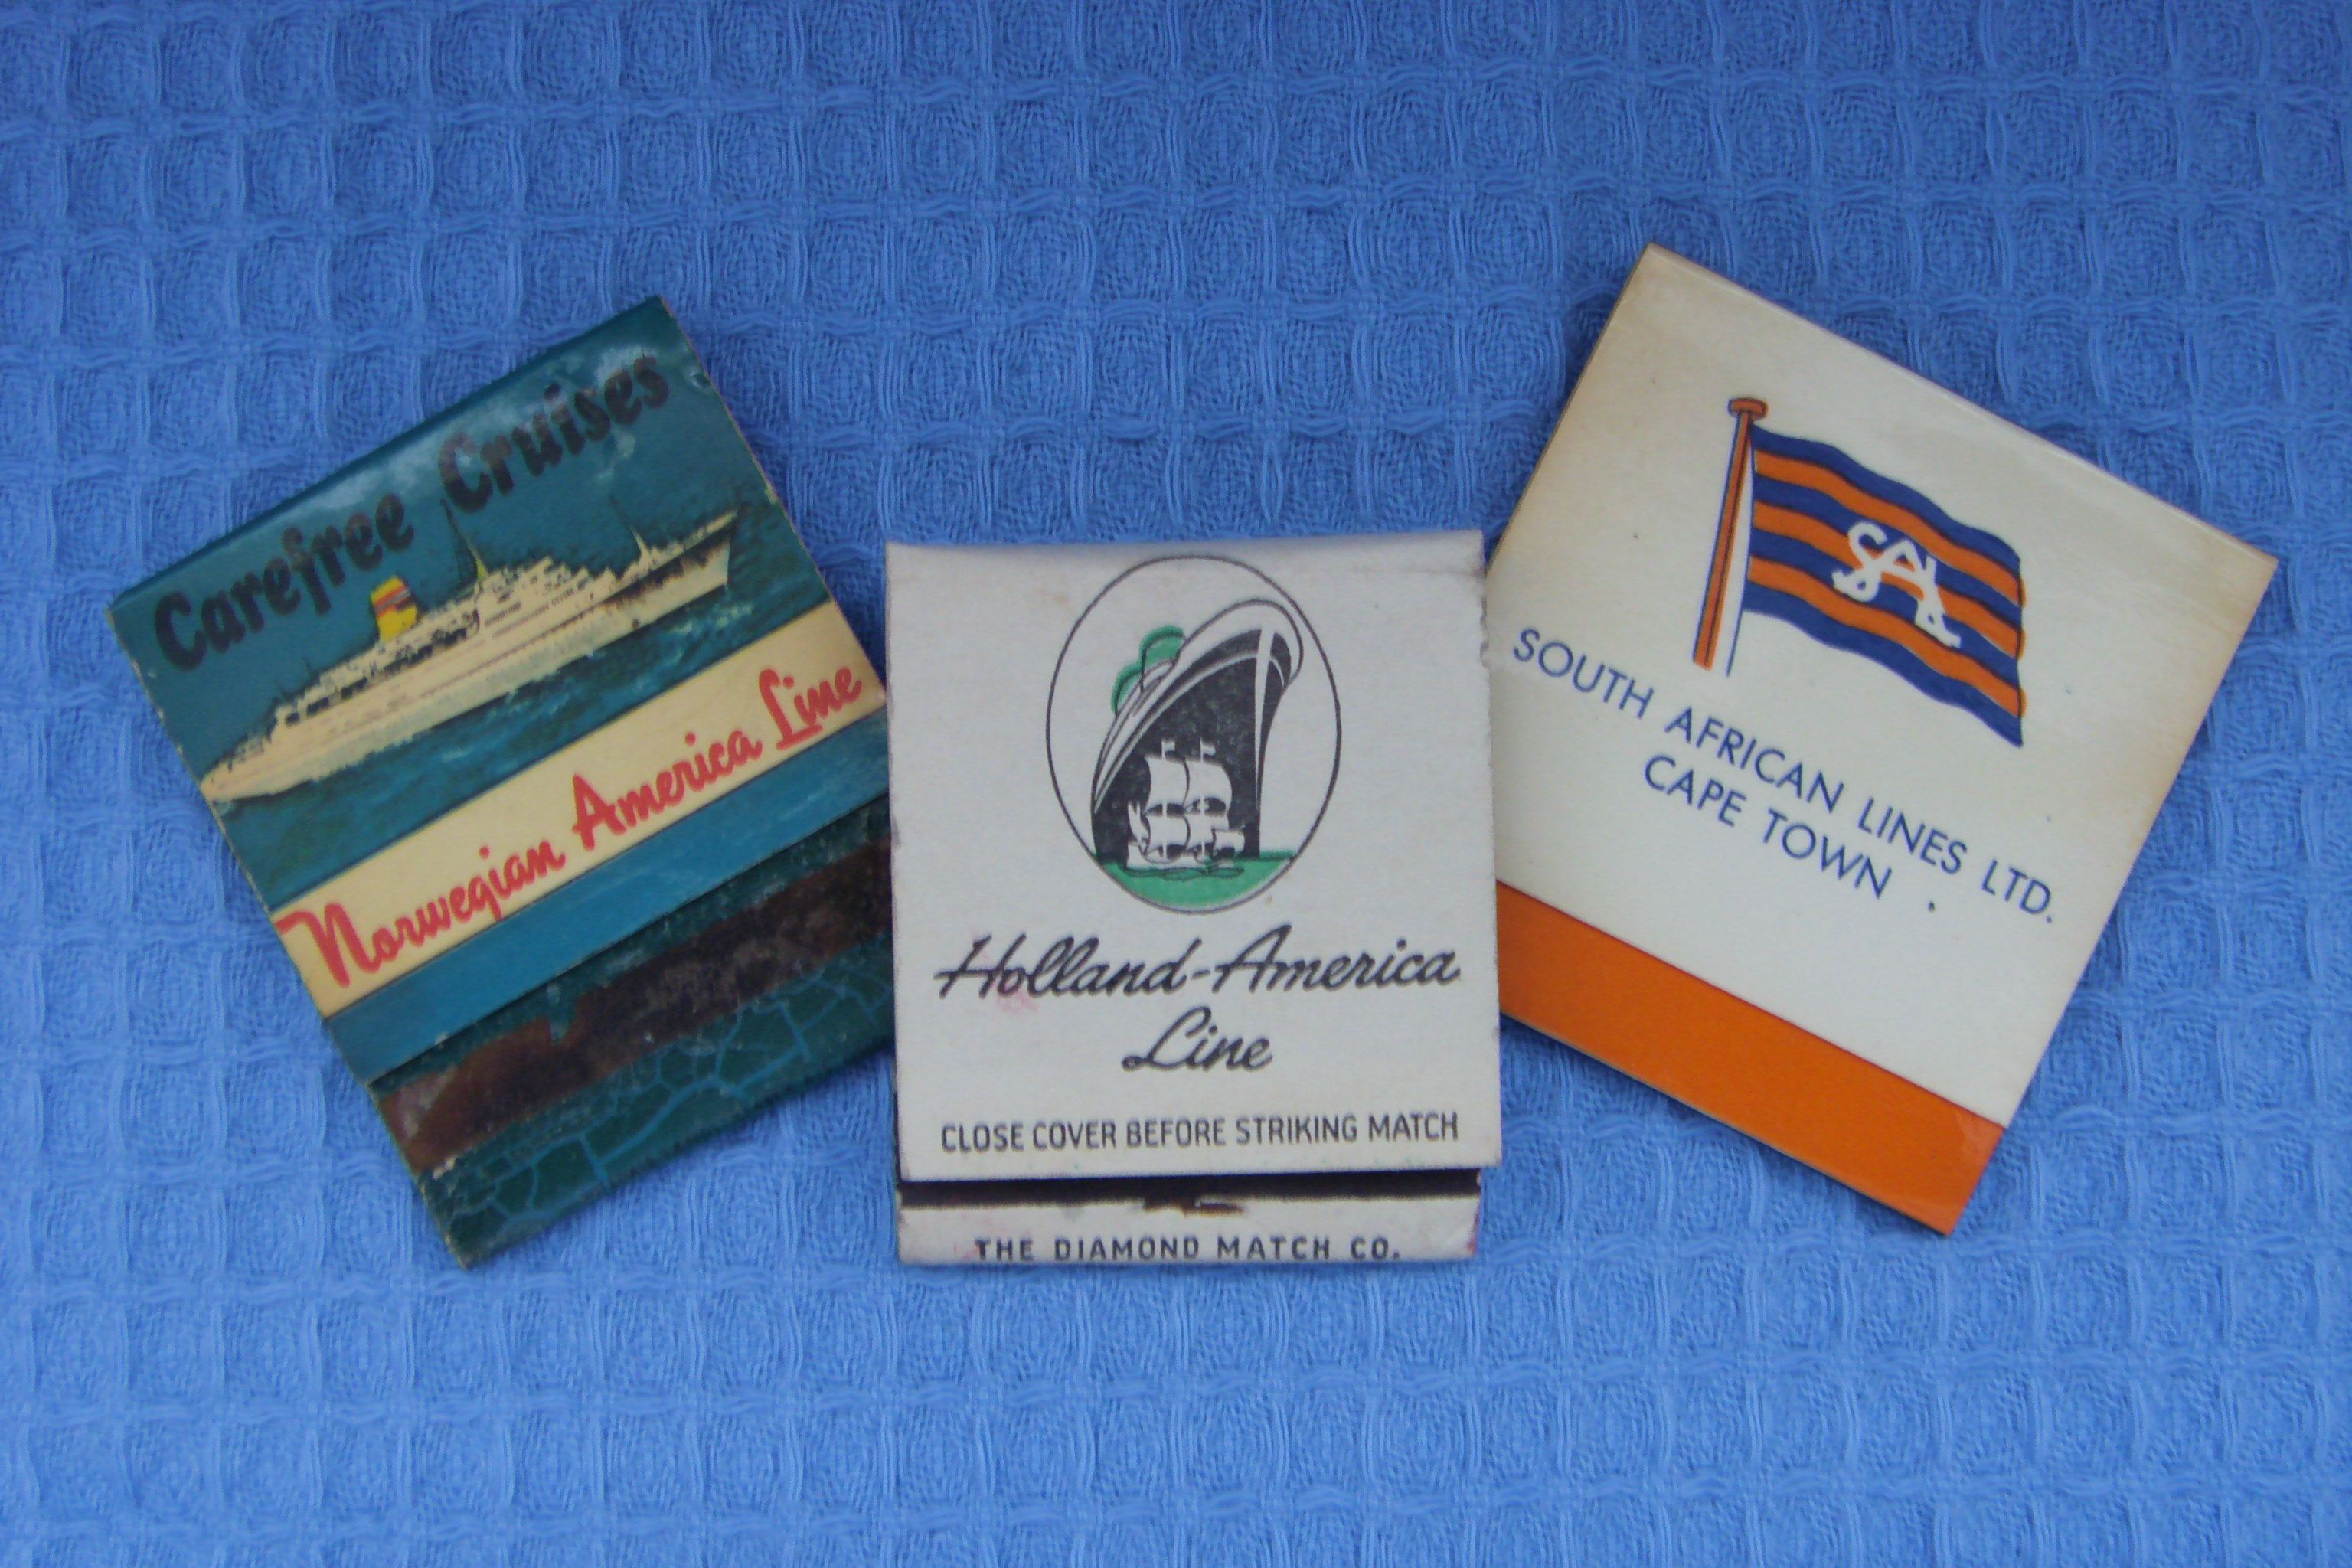 THREE VERY OLD BOOKS OF CIGARETTE MATCHES FROM VARIOUS OLD SHIPPING LINE COMPANIES